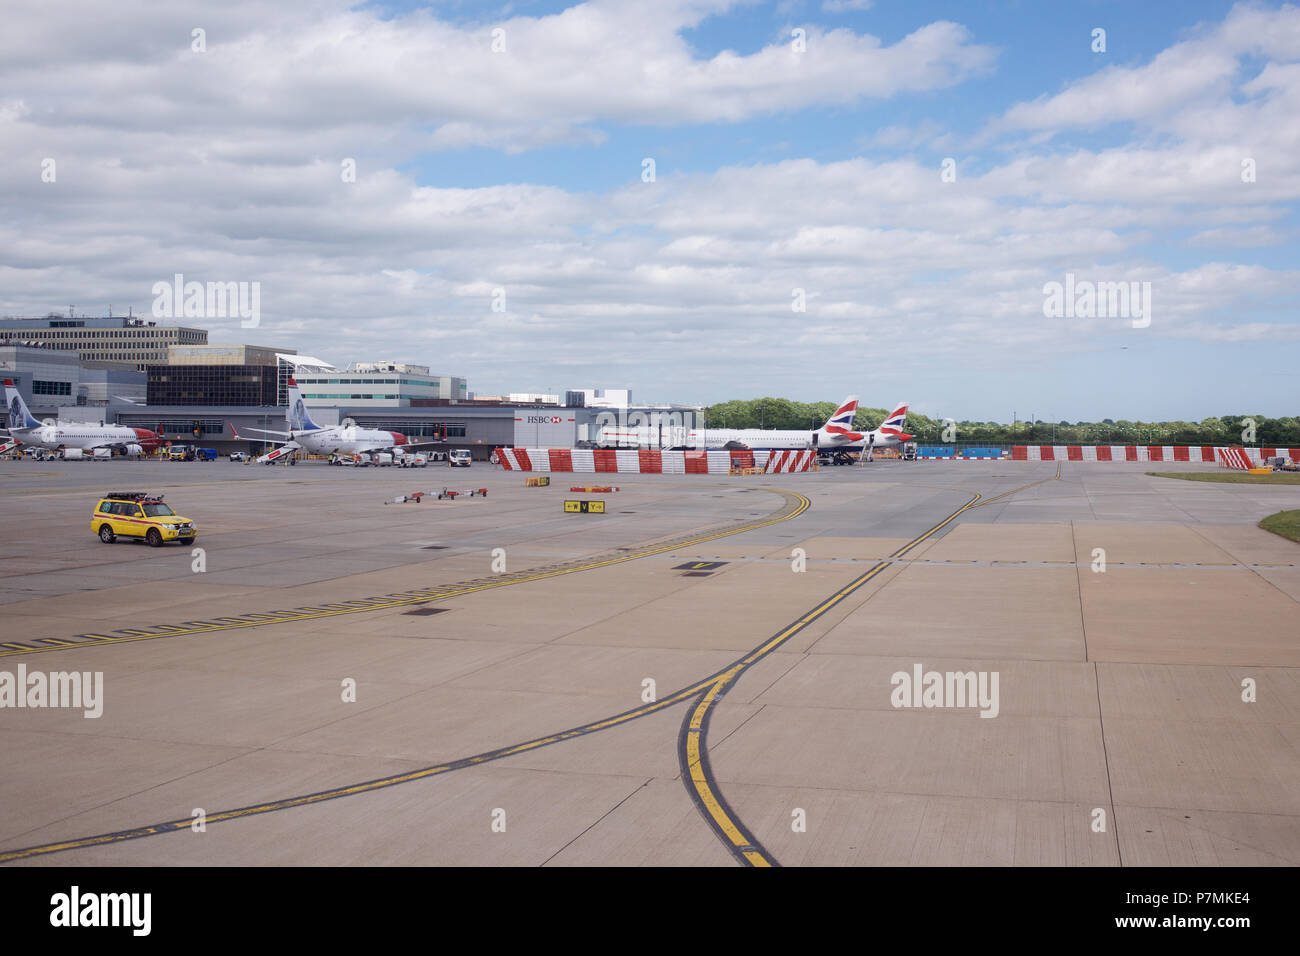 London Gatwick airport viewed from an aircraft - Stock Image